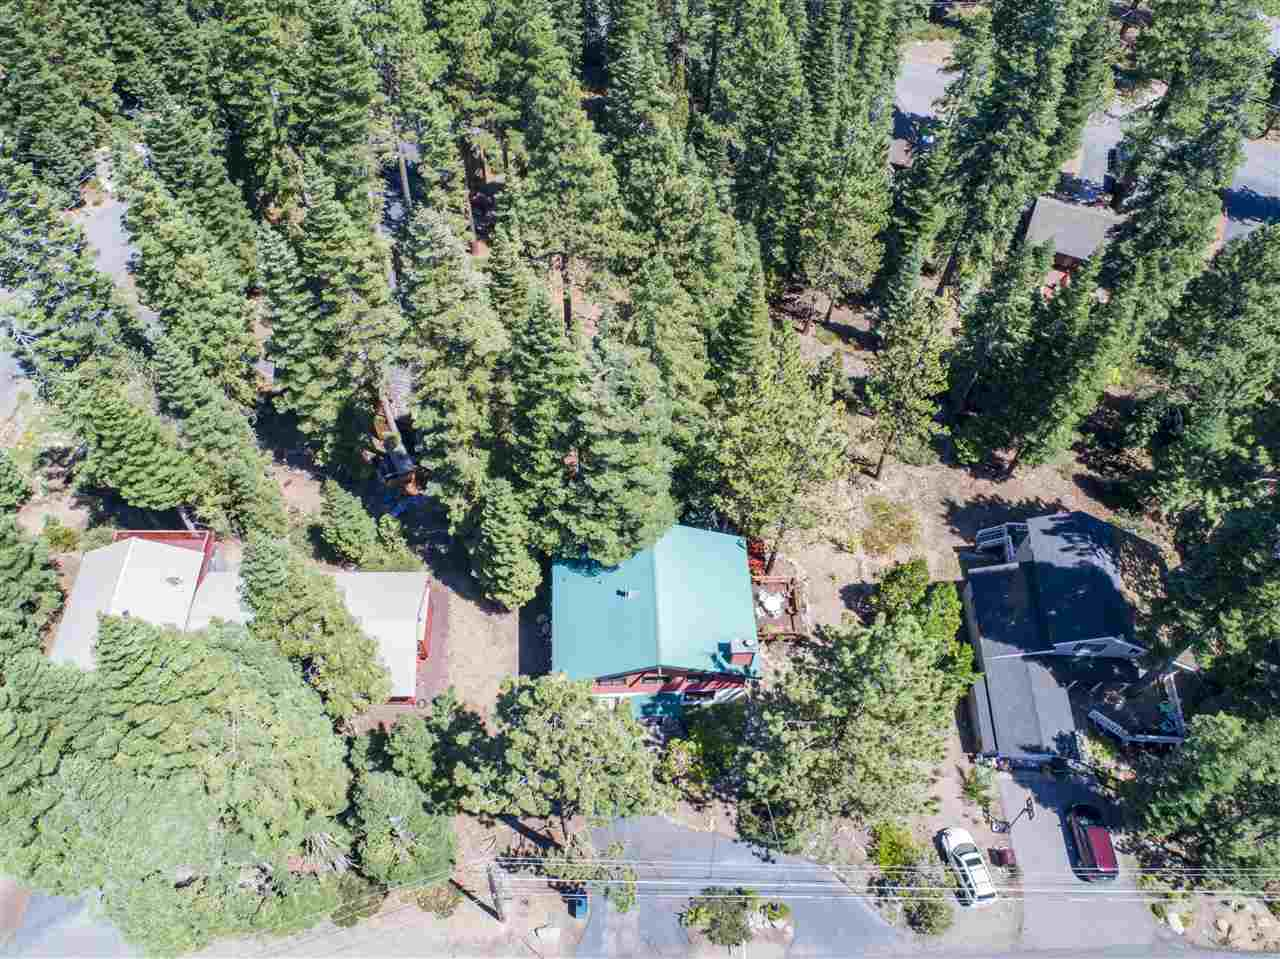 Casa Unifamiliar por un Venta en 4480 North Ridge Drive 4480 North Ridge Drive Tahoe City, California 96140 Estados Unidos